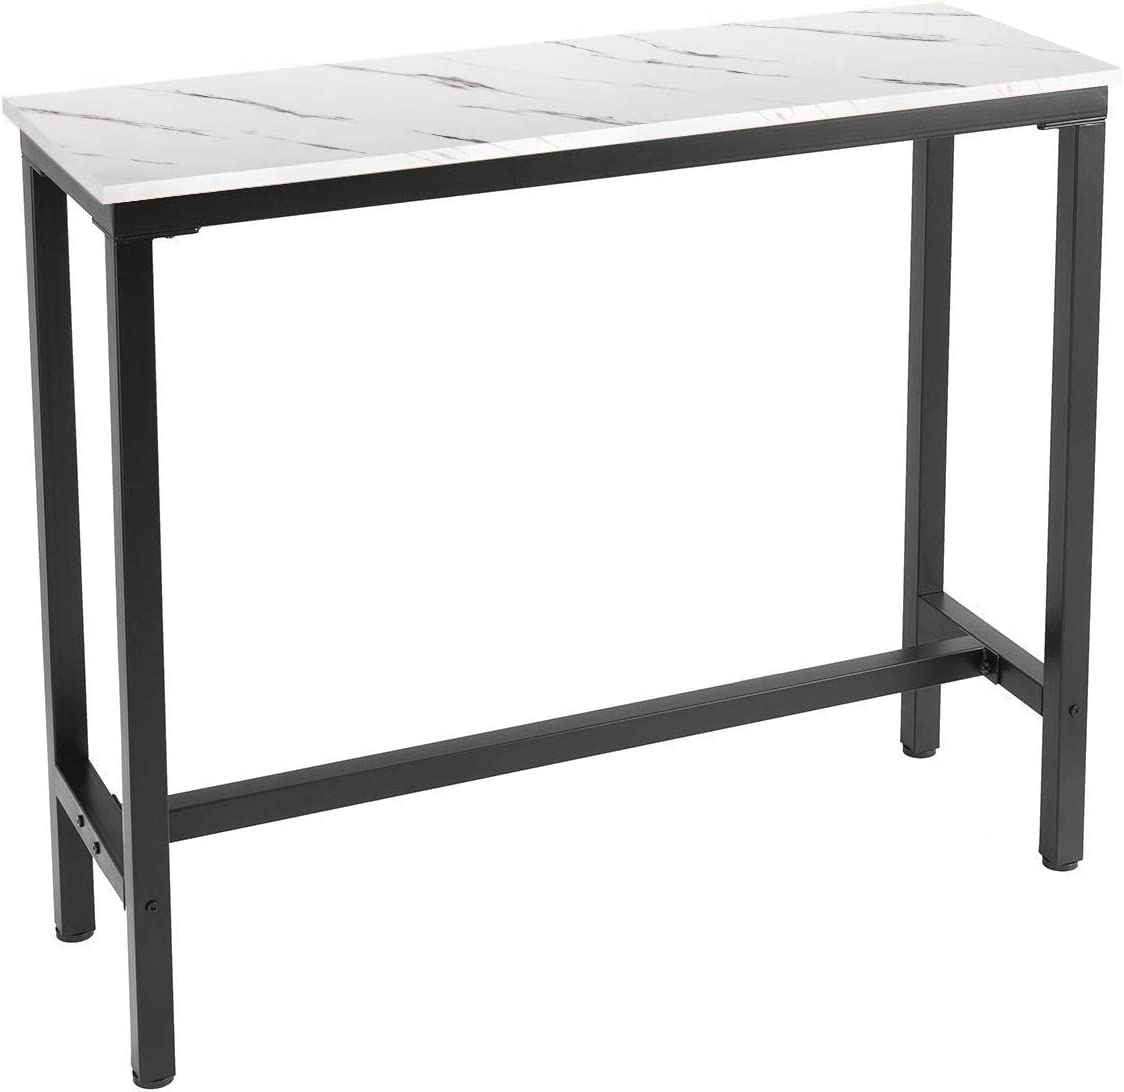 Mr IRONSTONE 47 Pub Dining Table, Bar Height Table with MDF Top Covered with Laminate Marble Indoor USE ONLY